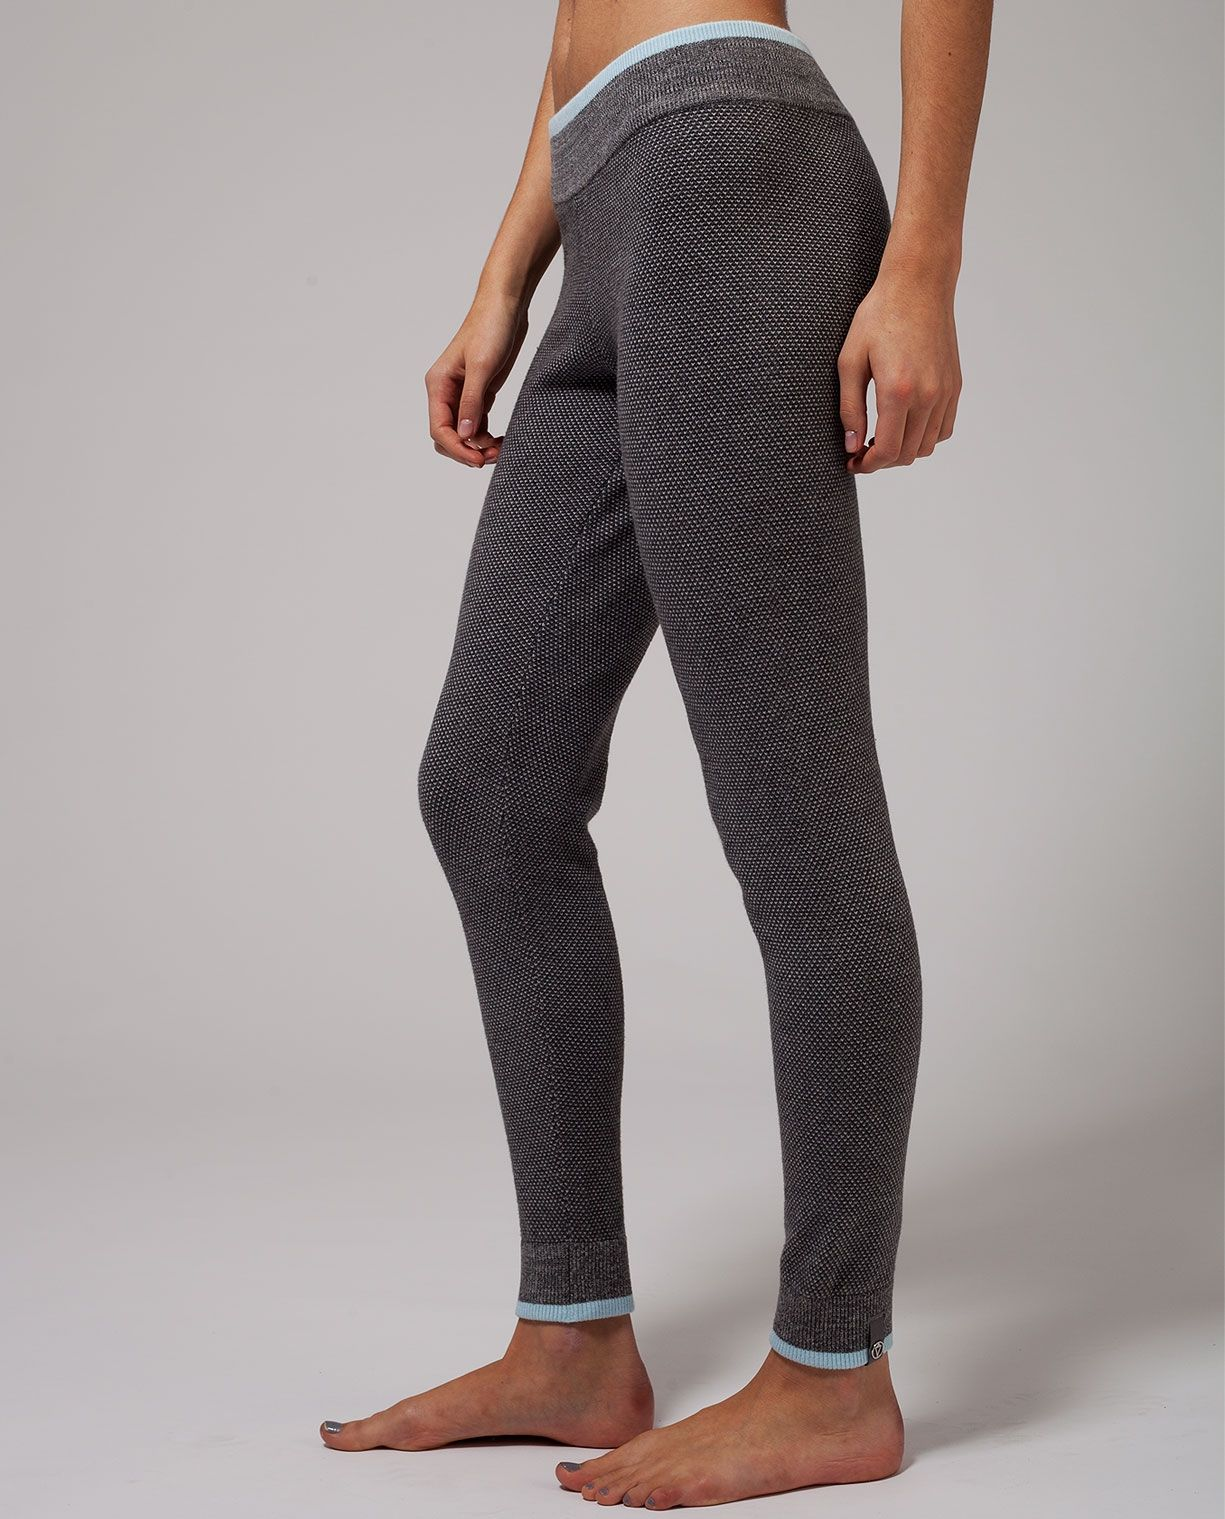 6858fc7efb Ivivva Feelin' Toasty Pant in heathered dark grey/heathered medium  grey/caspian blue